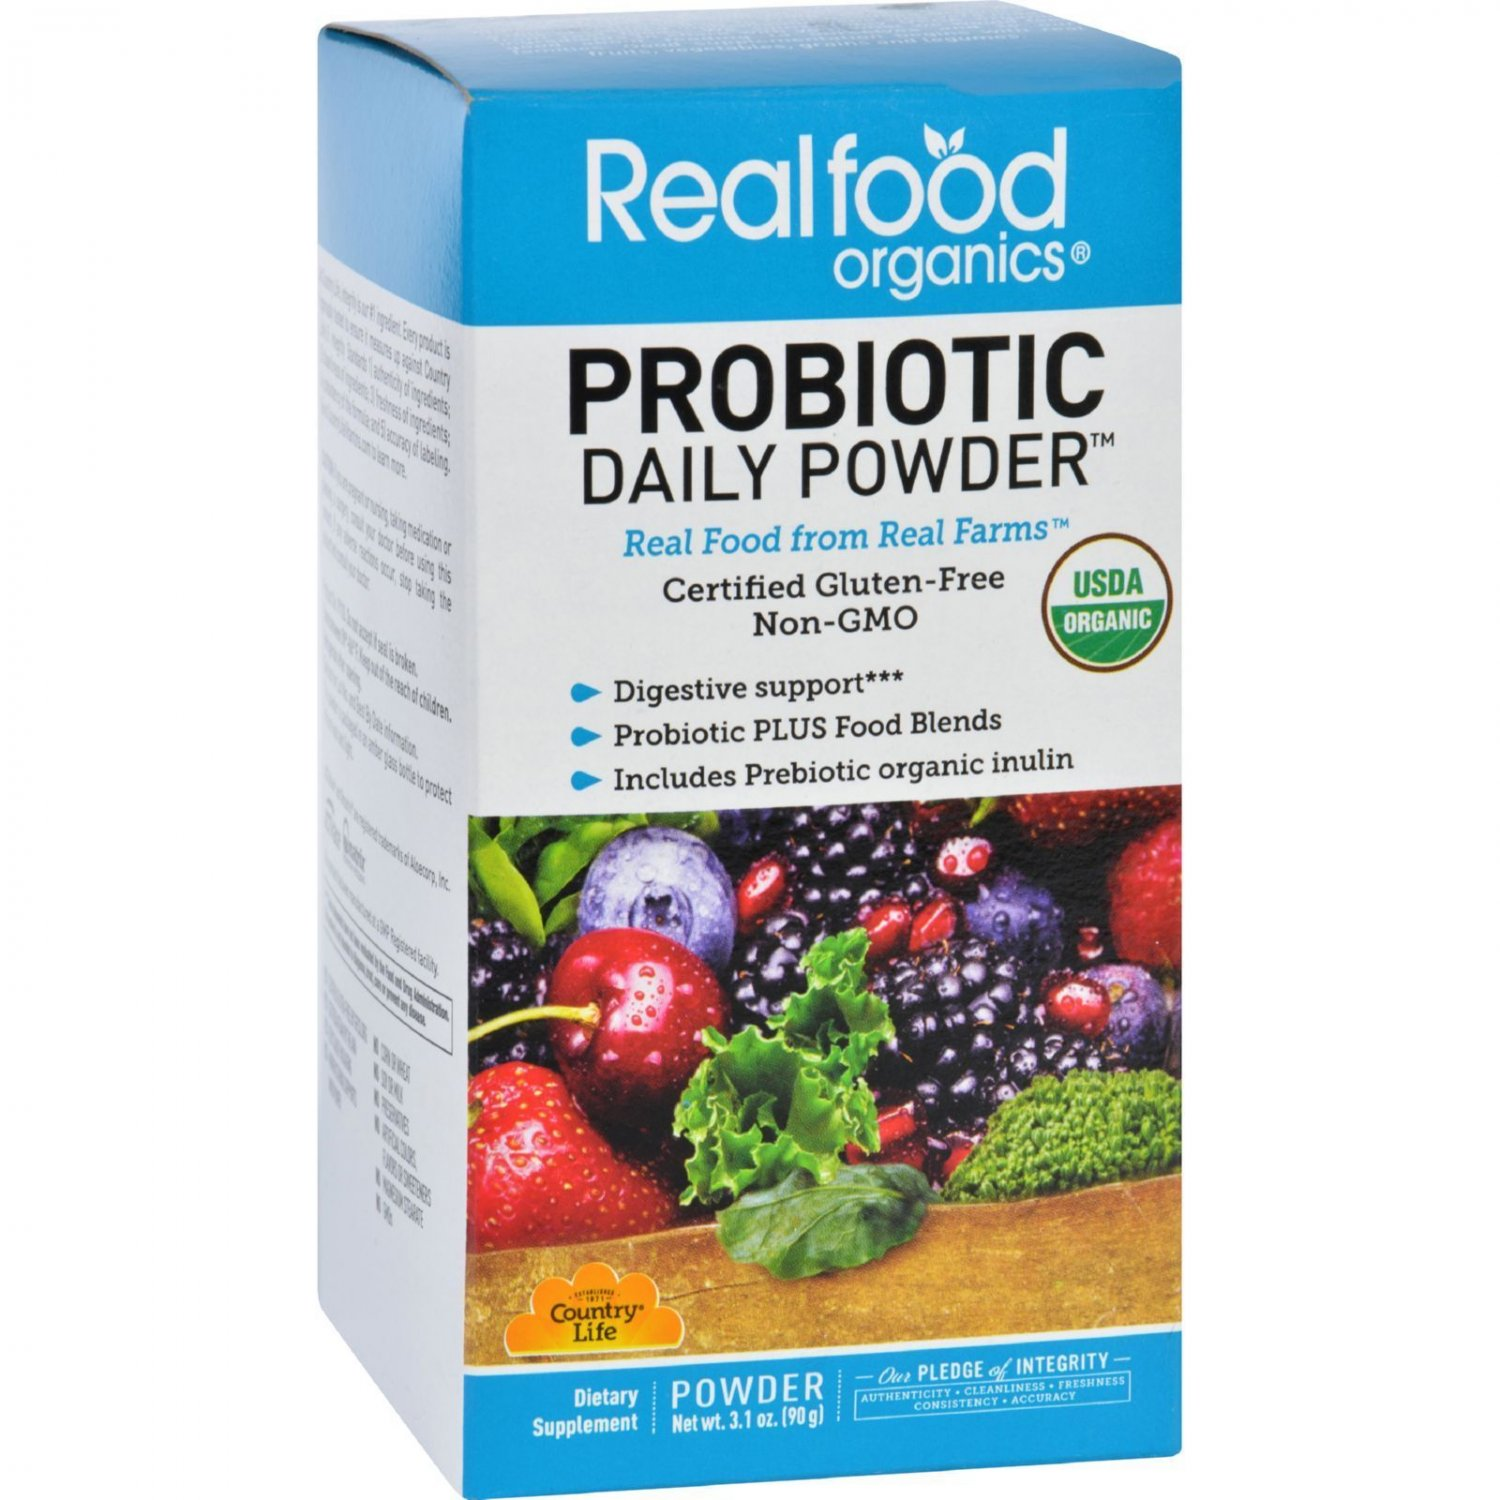 Realfood Organics Probiotic Daily Powder - Organic - 3.1 oz